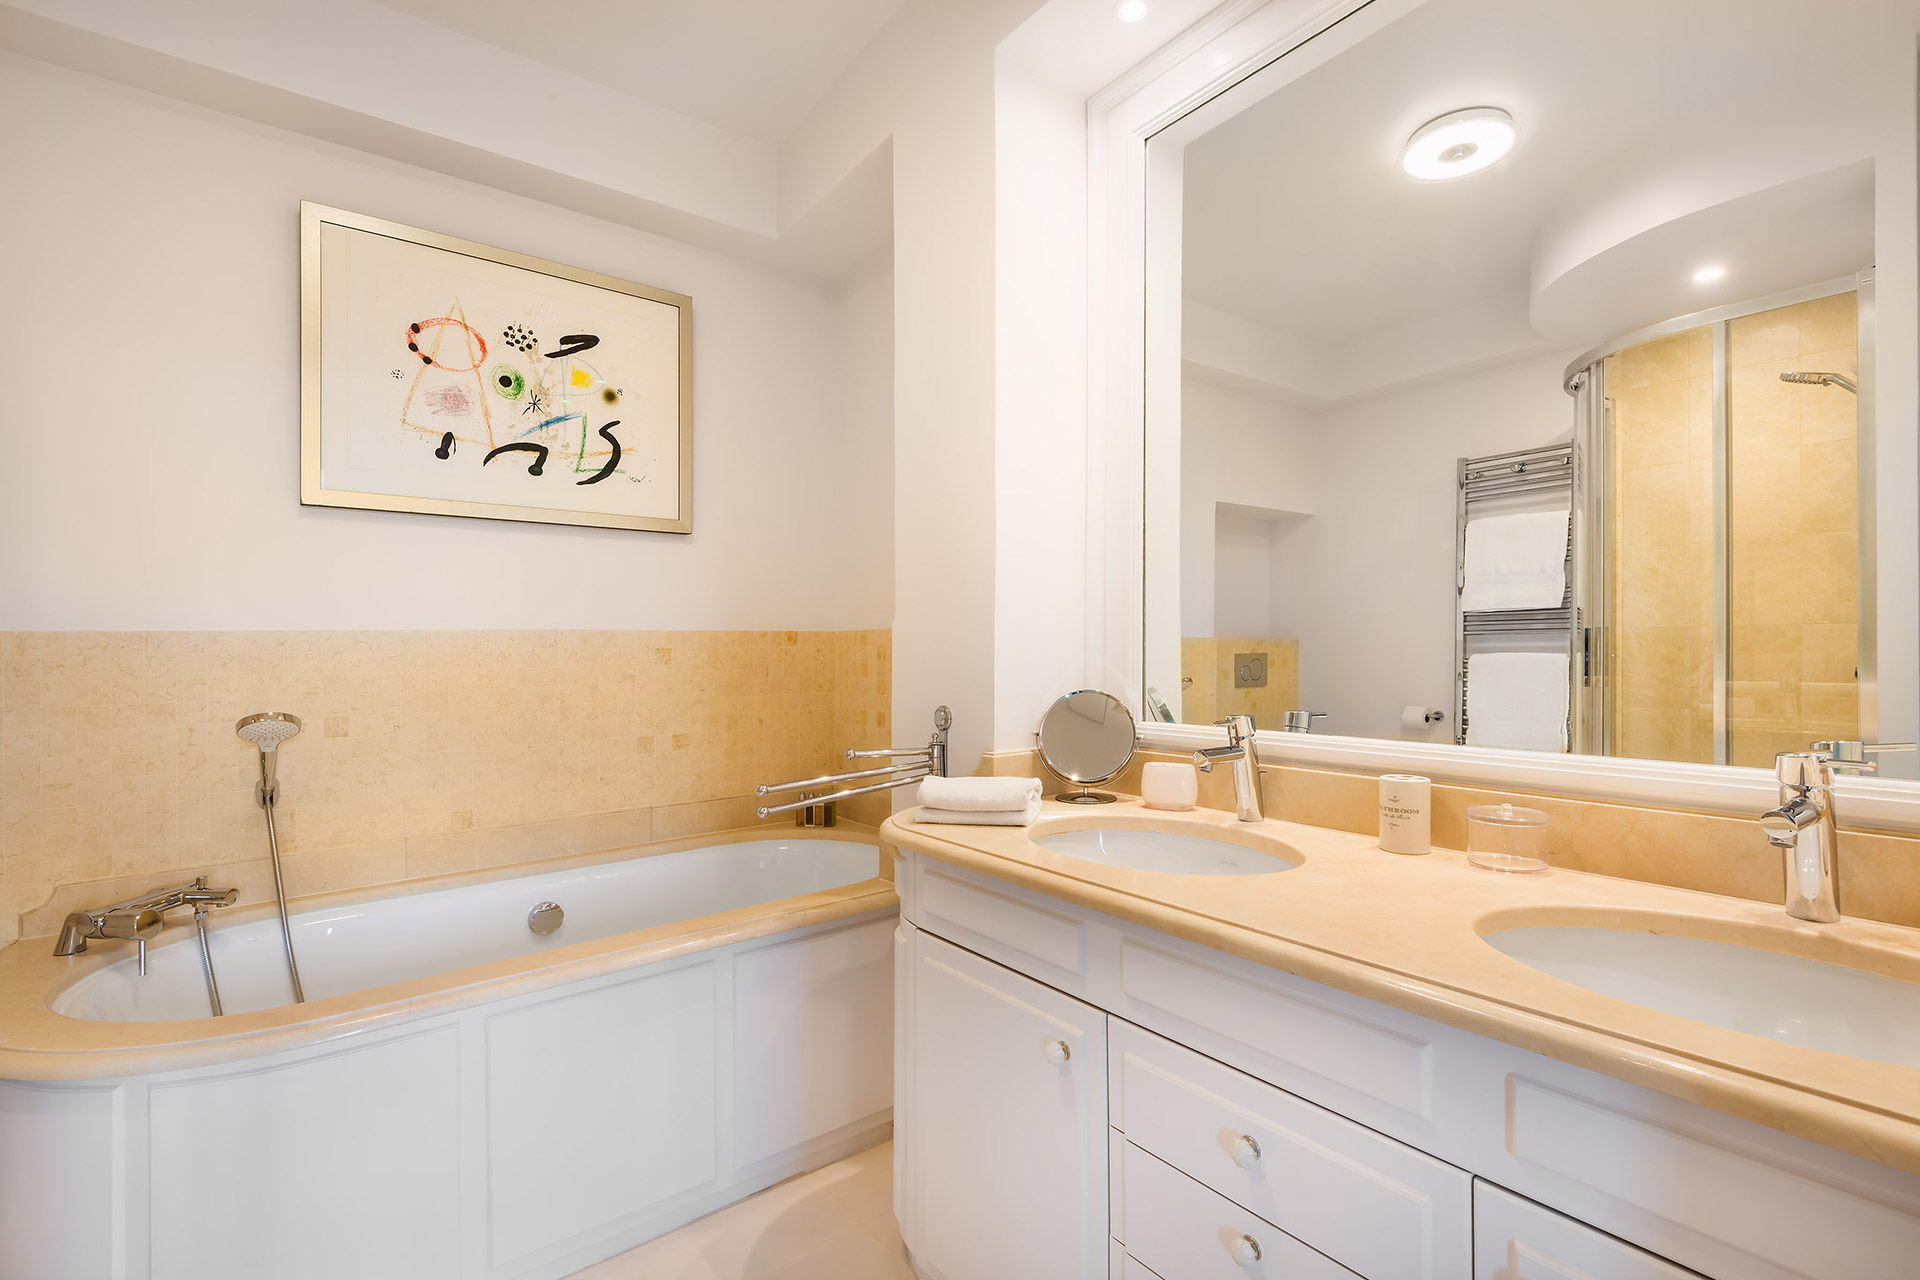 Luxurious bathroom 1 in the Chevalier vacation rental by Paris Perfect